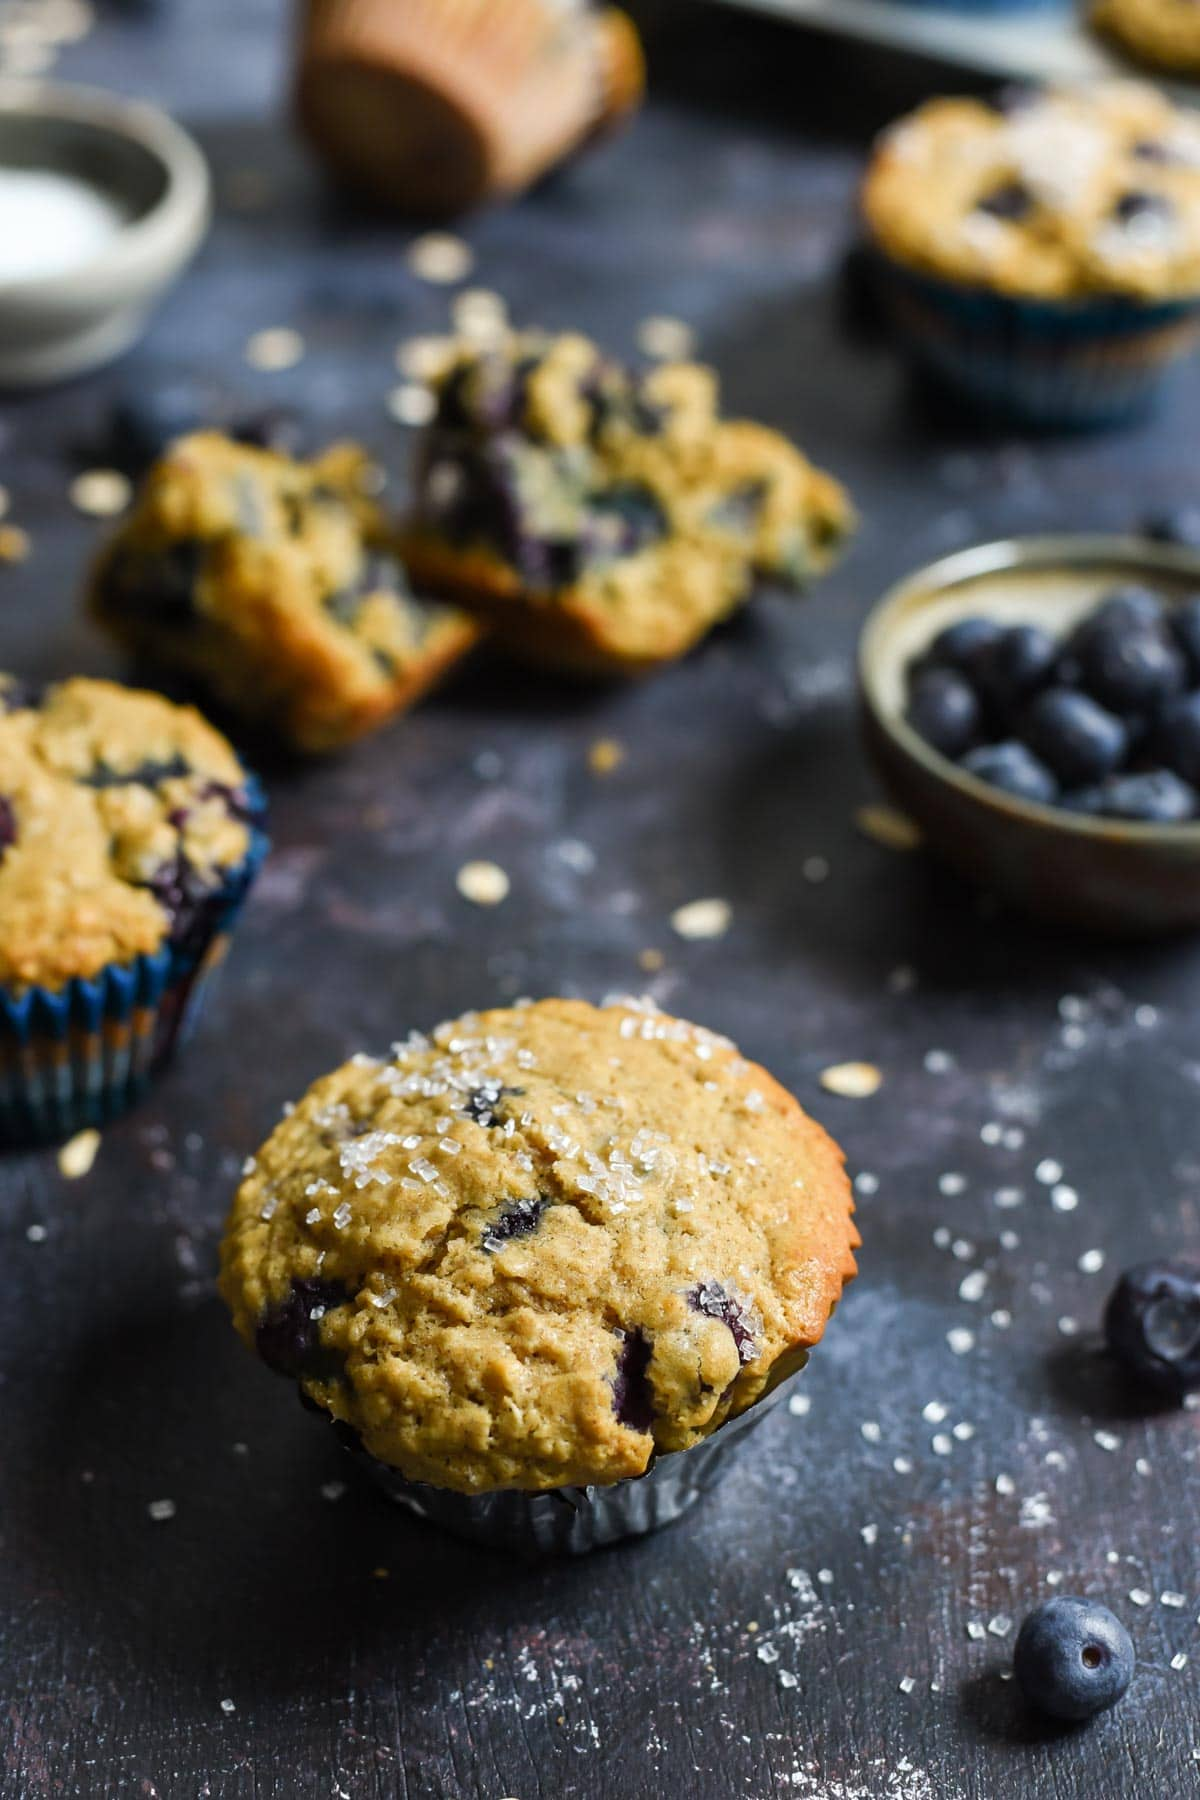 These Blueberry Oatmeal Muffins are hearty, healthy, and bursting with blueberries!